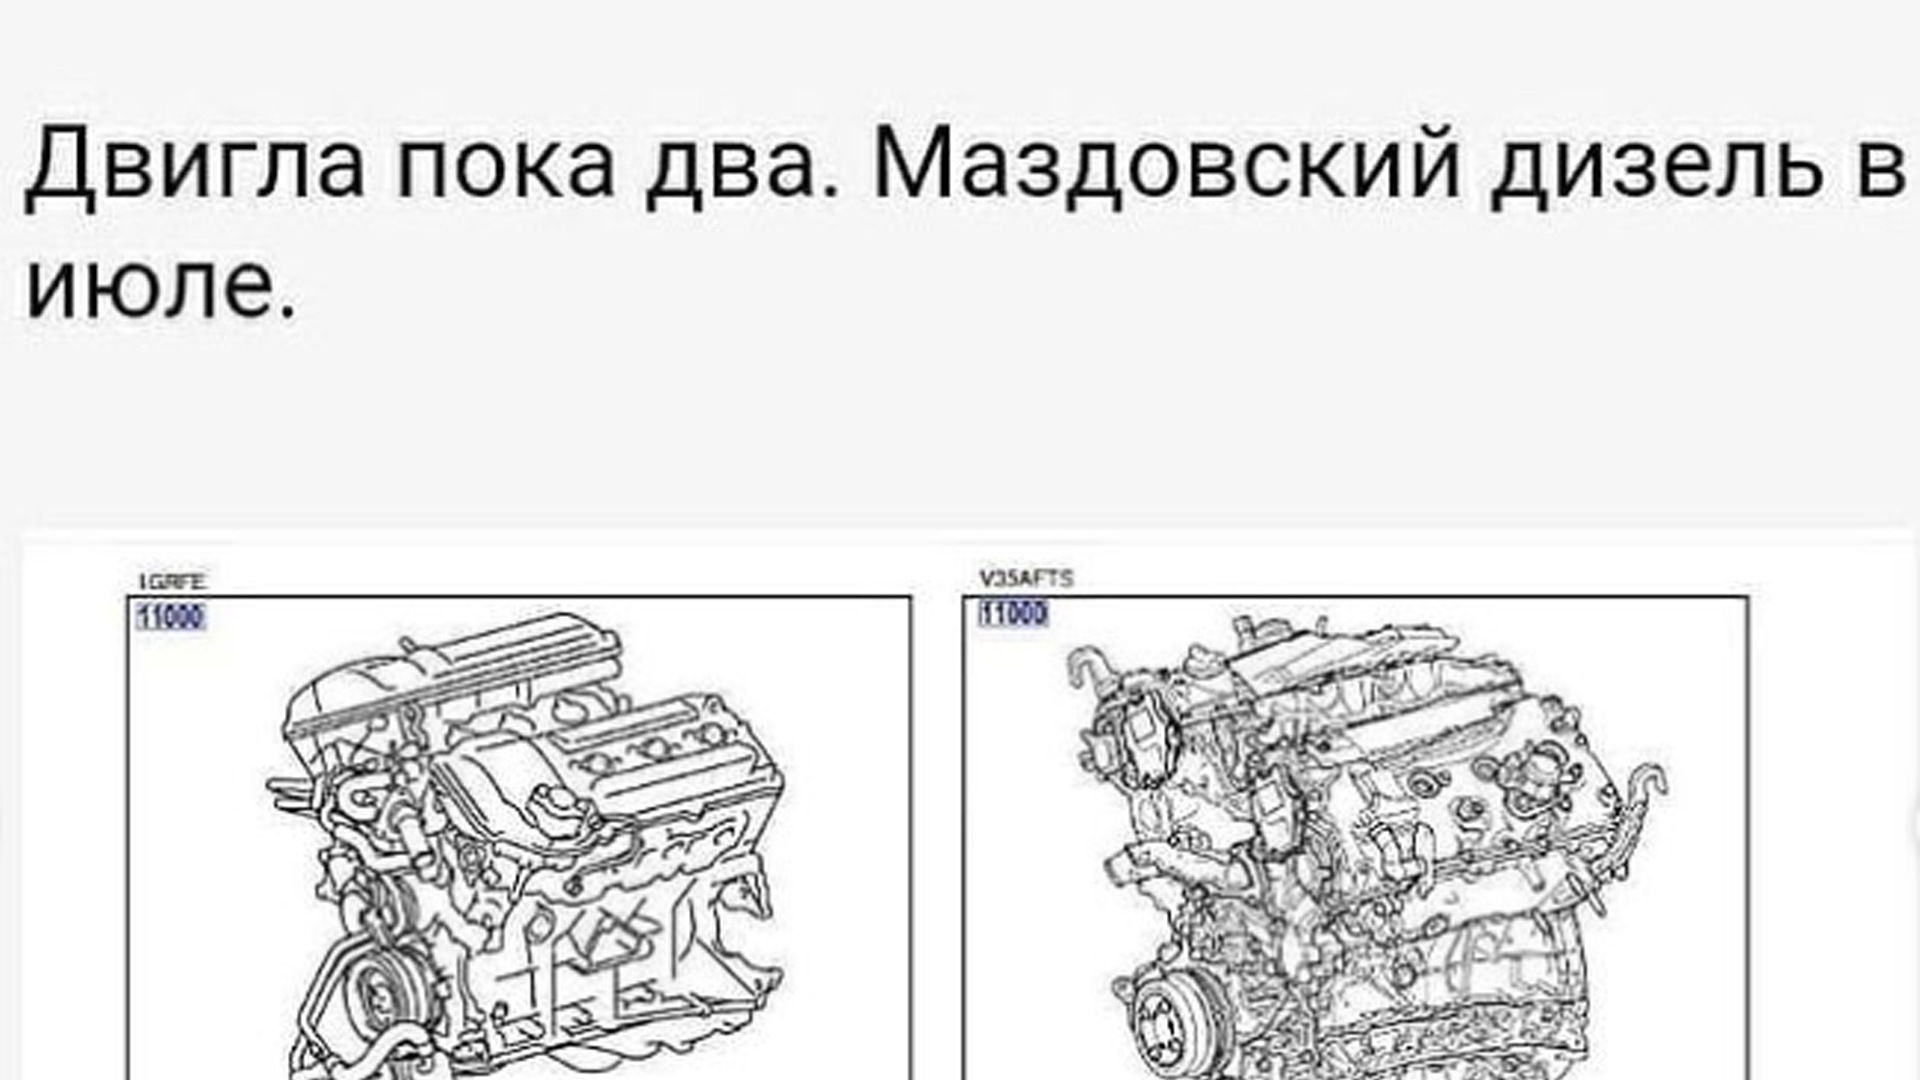 Alleged technical drawing for 2022 Toyota Land Cruiser (300 series) - Photo credit: Prado-Club